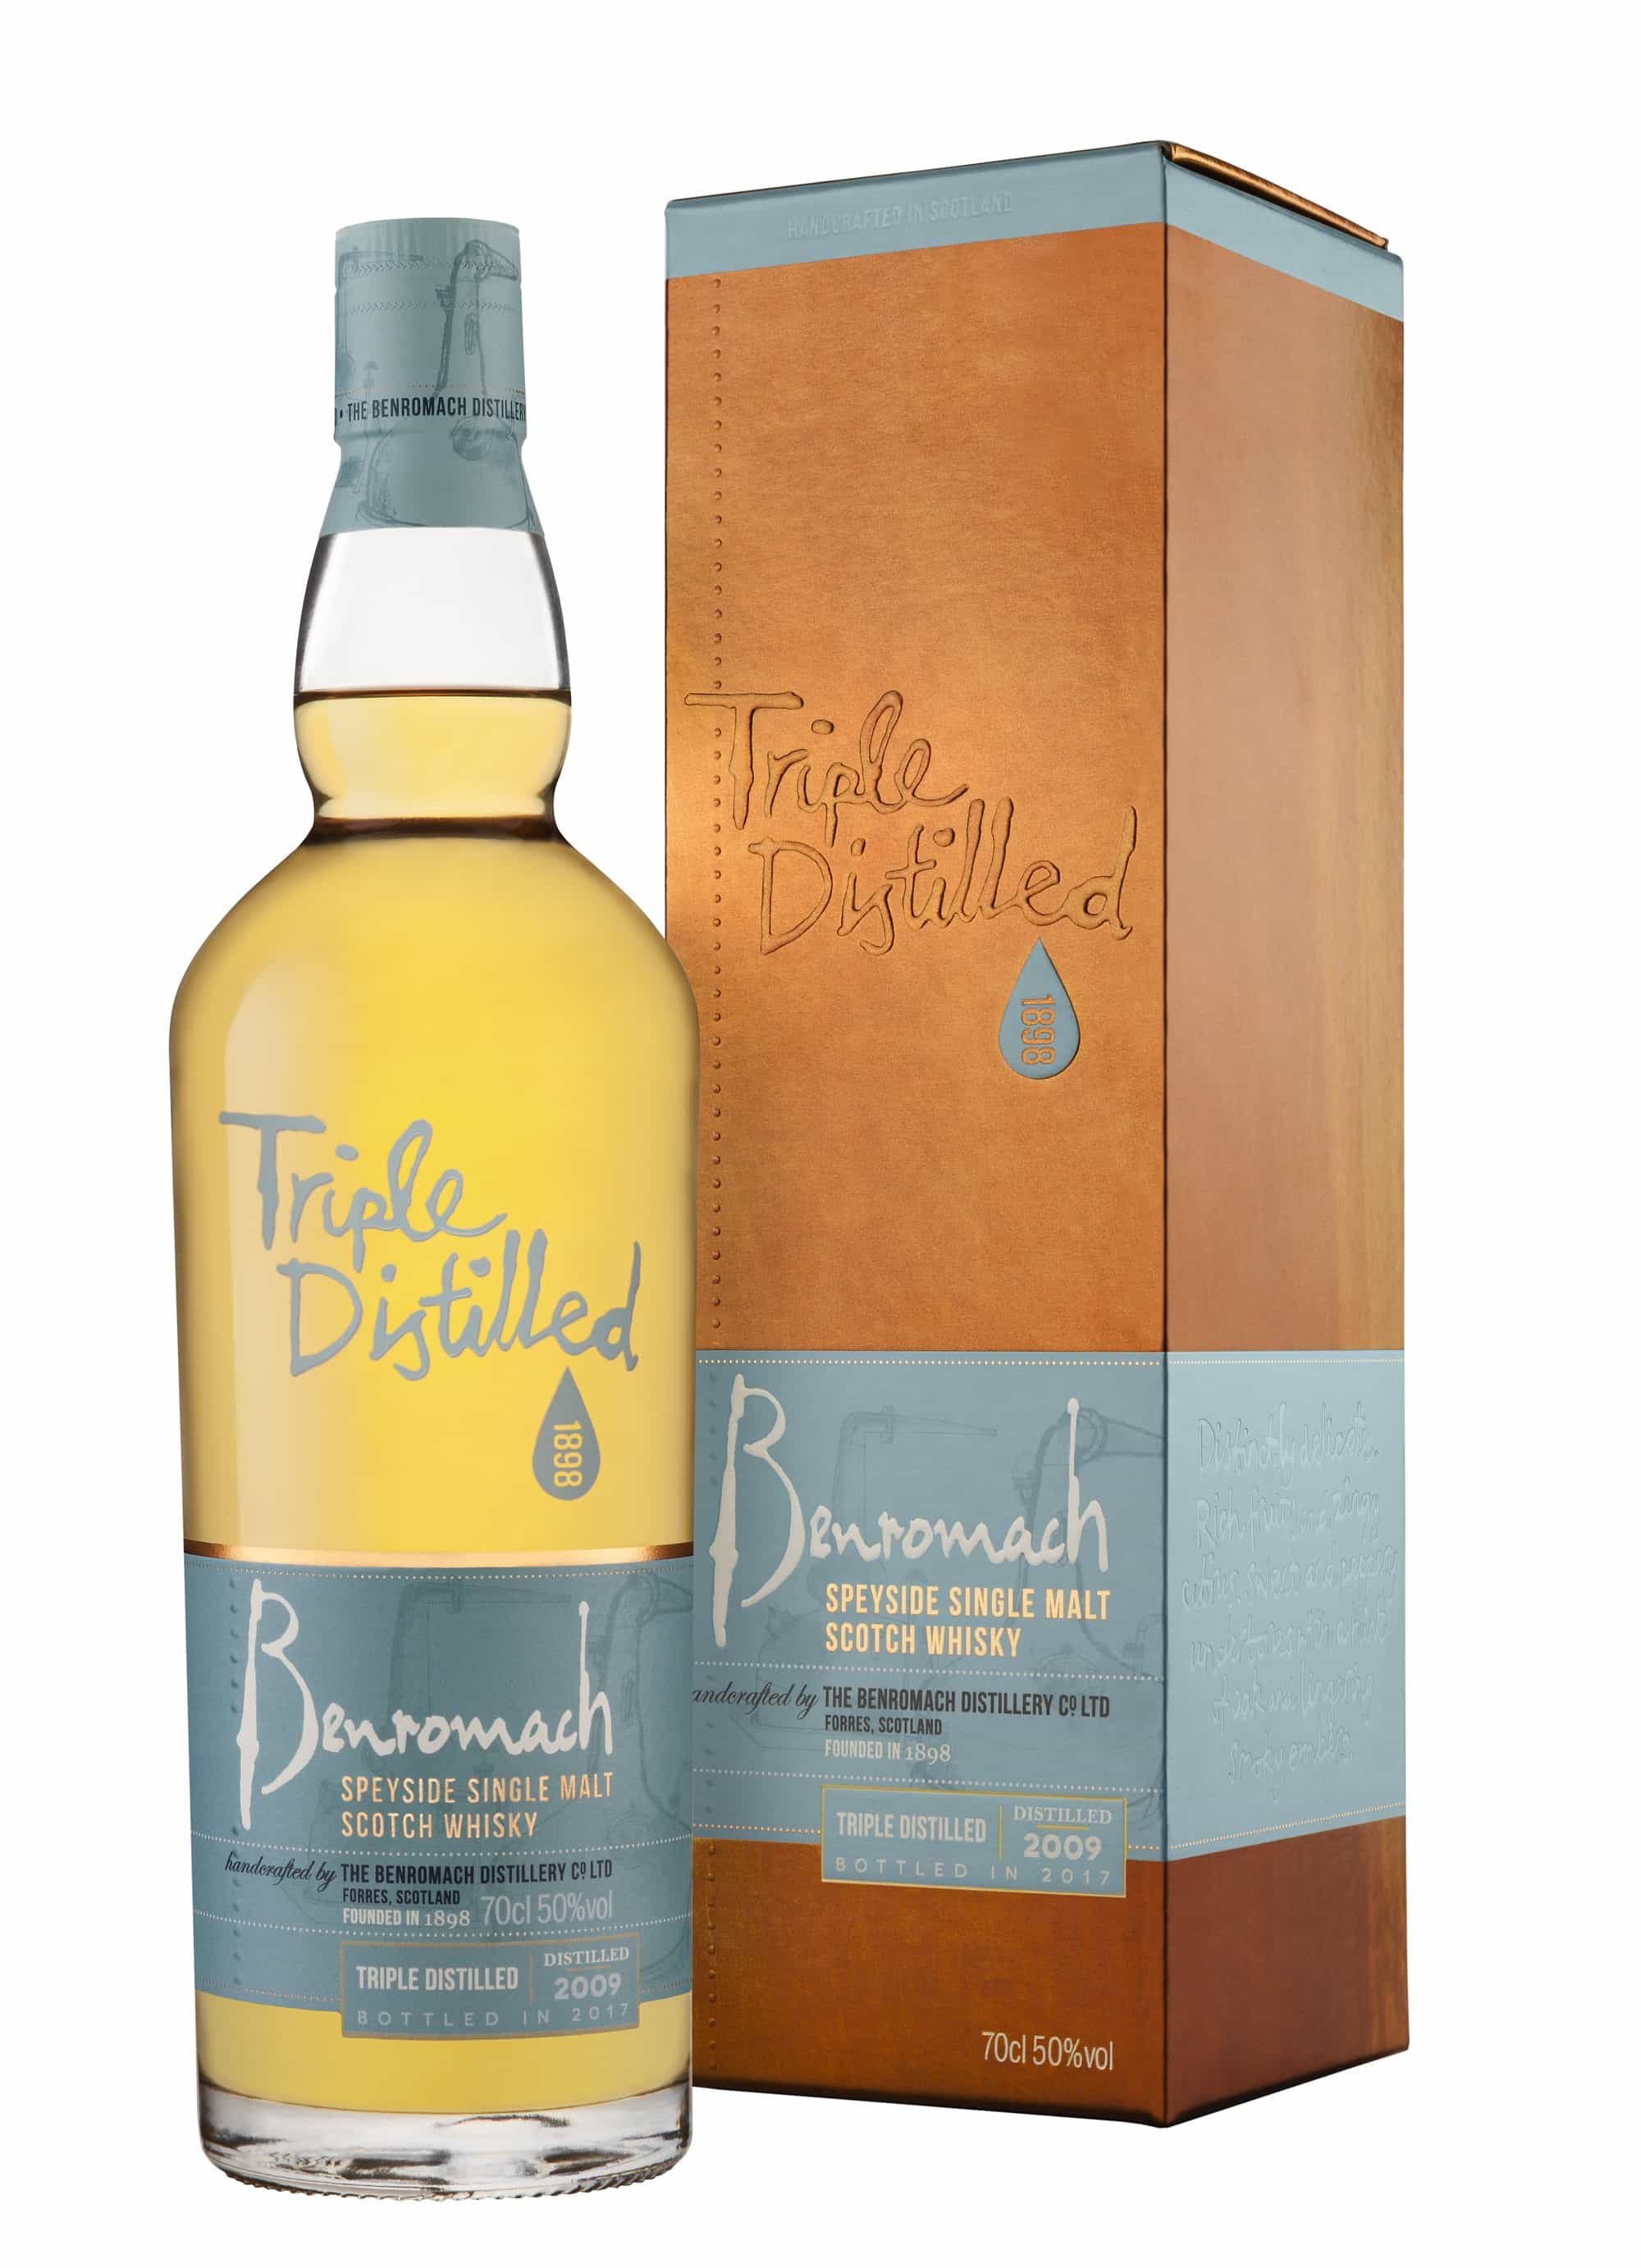 Benromach Triple Distilled